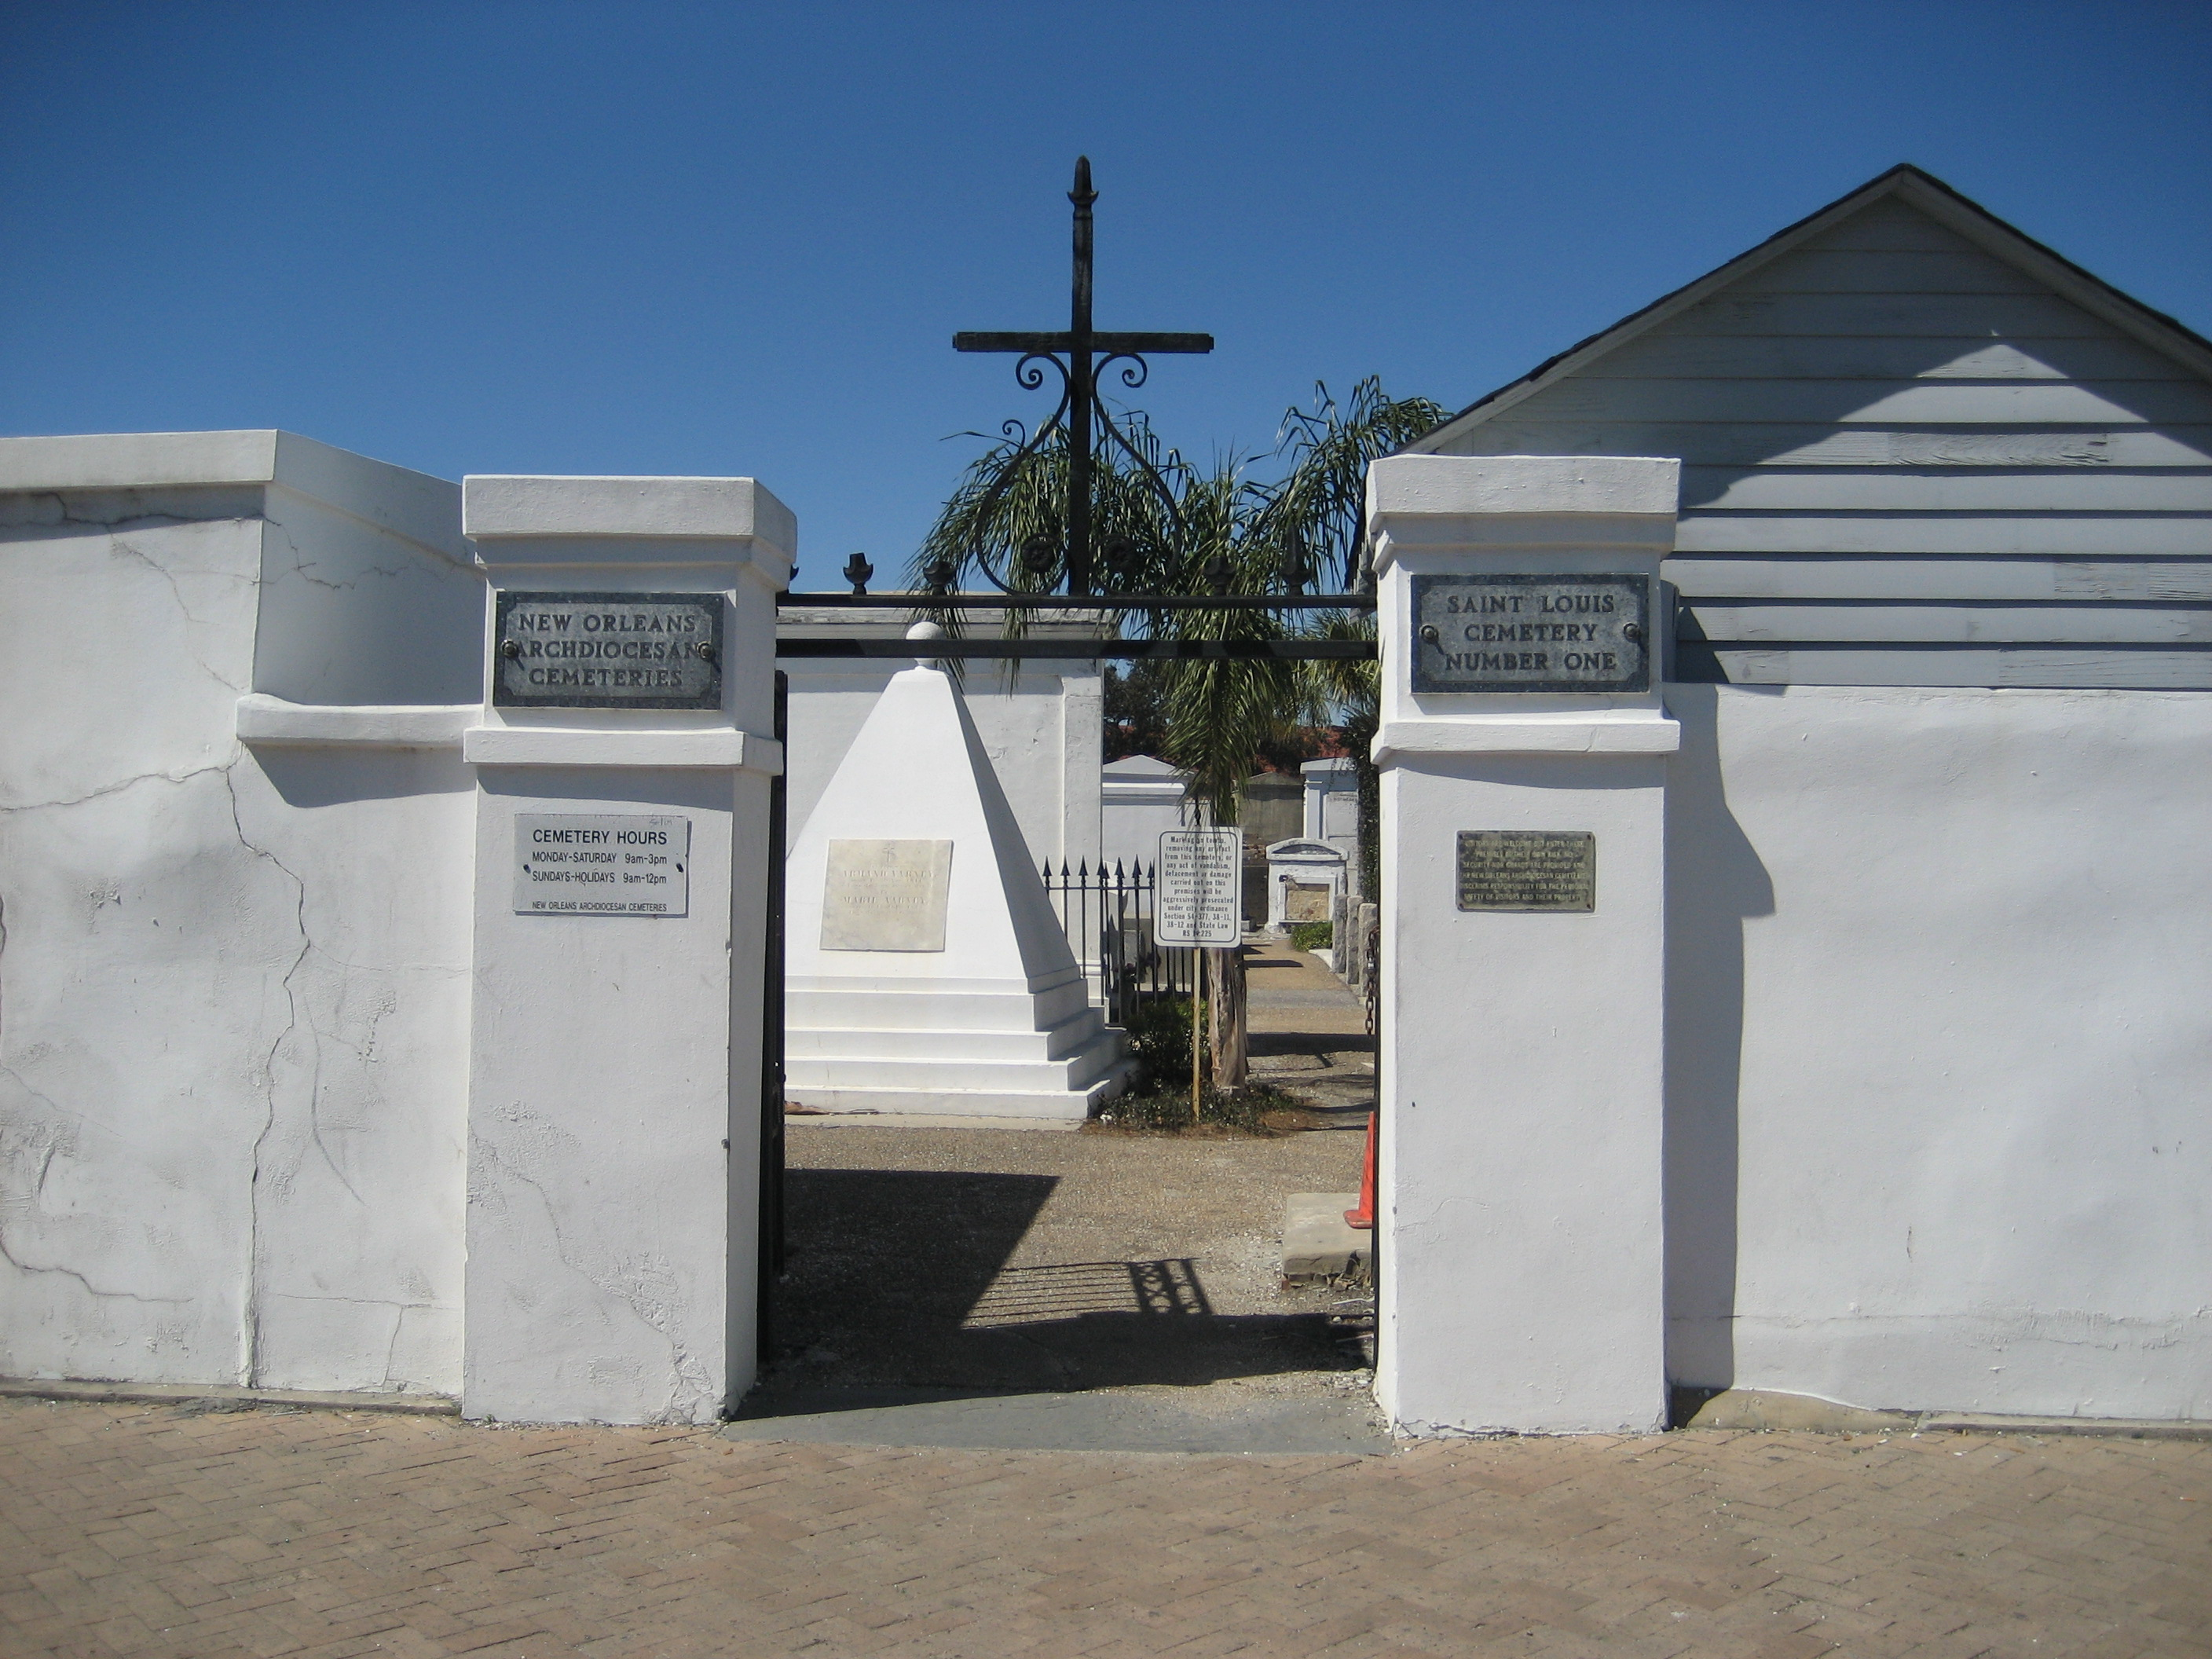 Basin Street New Orleans entrance gate to St. Louis Cemetery No. 1 ghosts haunted